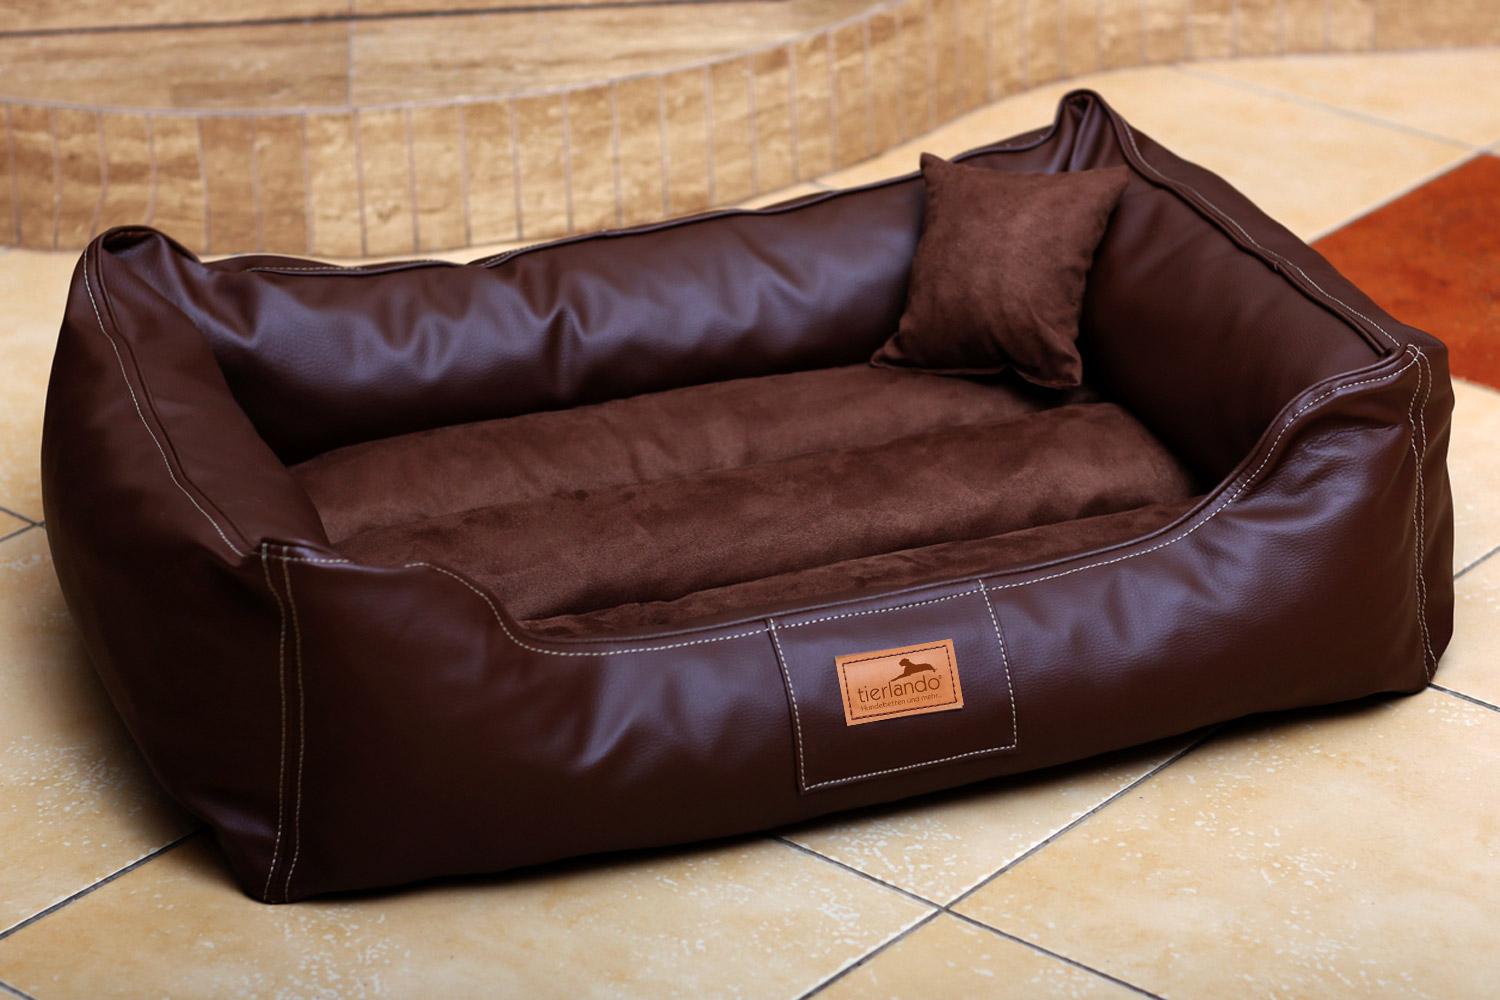 maddox vip lit pour chien par tierlando canap velours cuir s xxl 70 150cm ebay. Black Bedroom Furniture Sets. Home Design Ideas